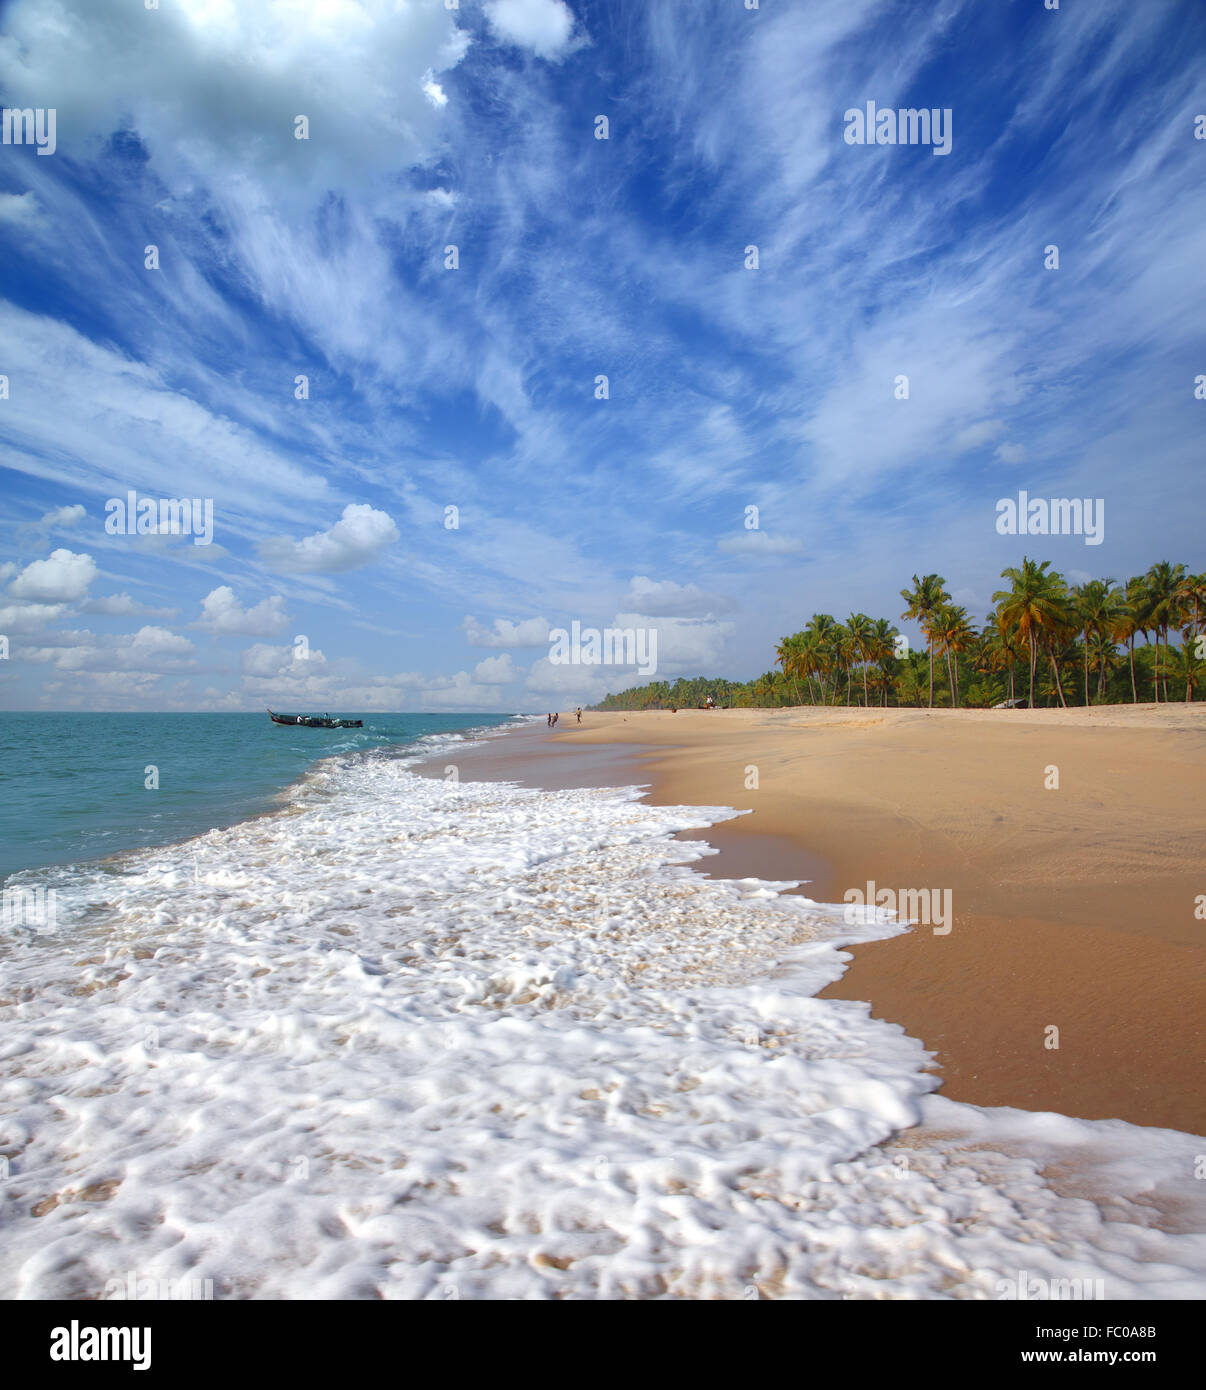 beach landscape with fishermen in India - Stock Image